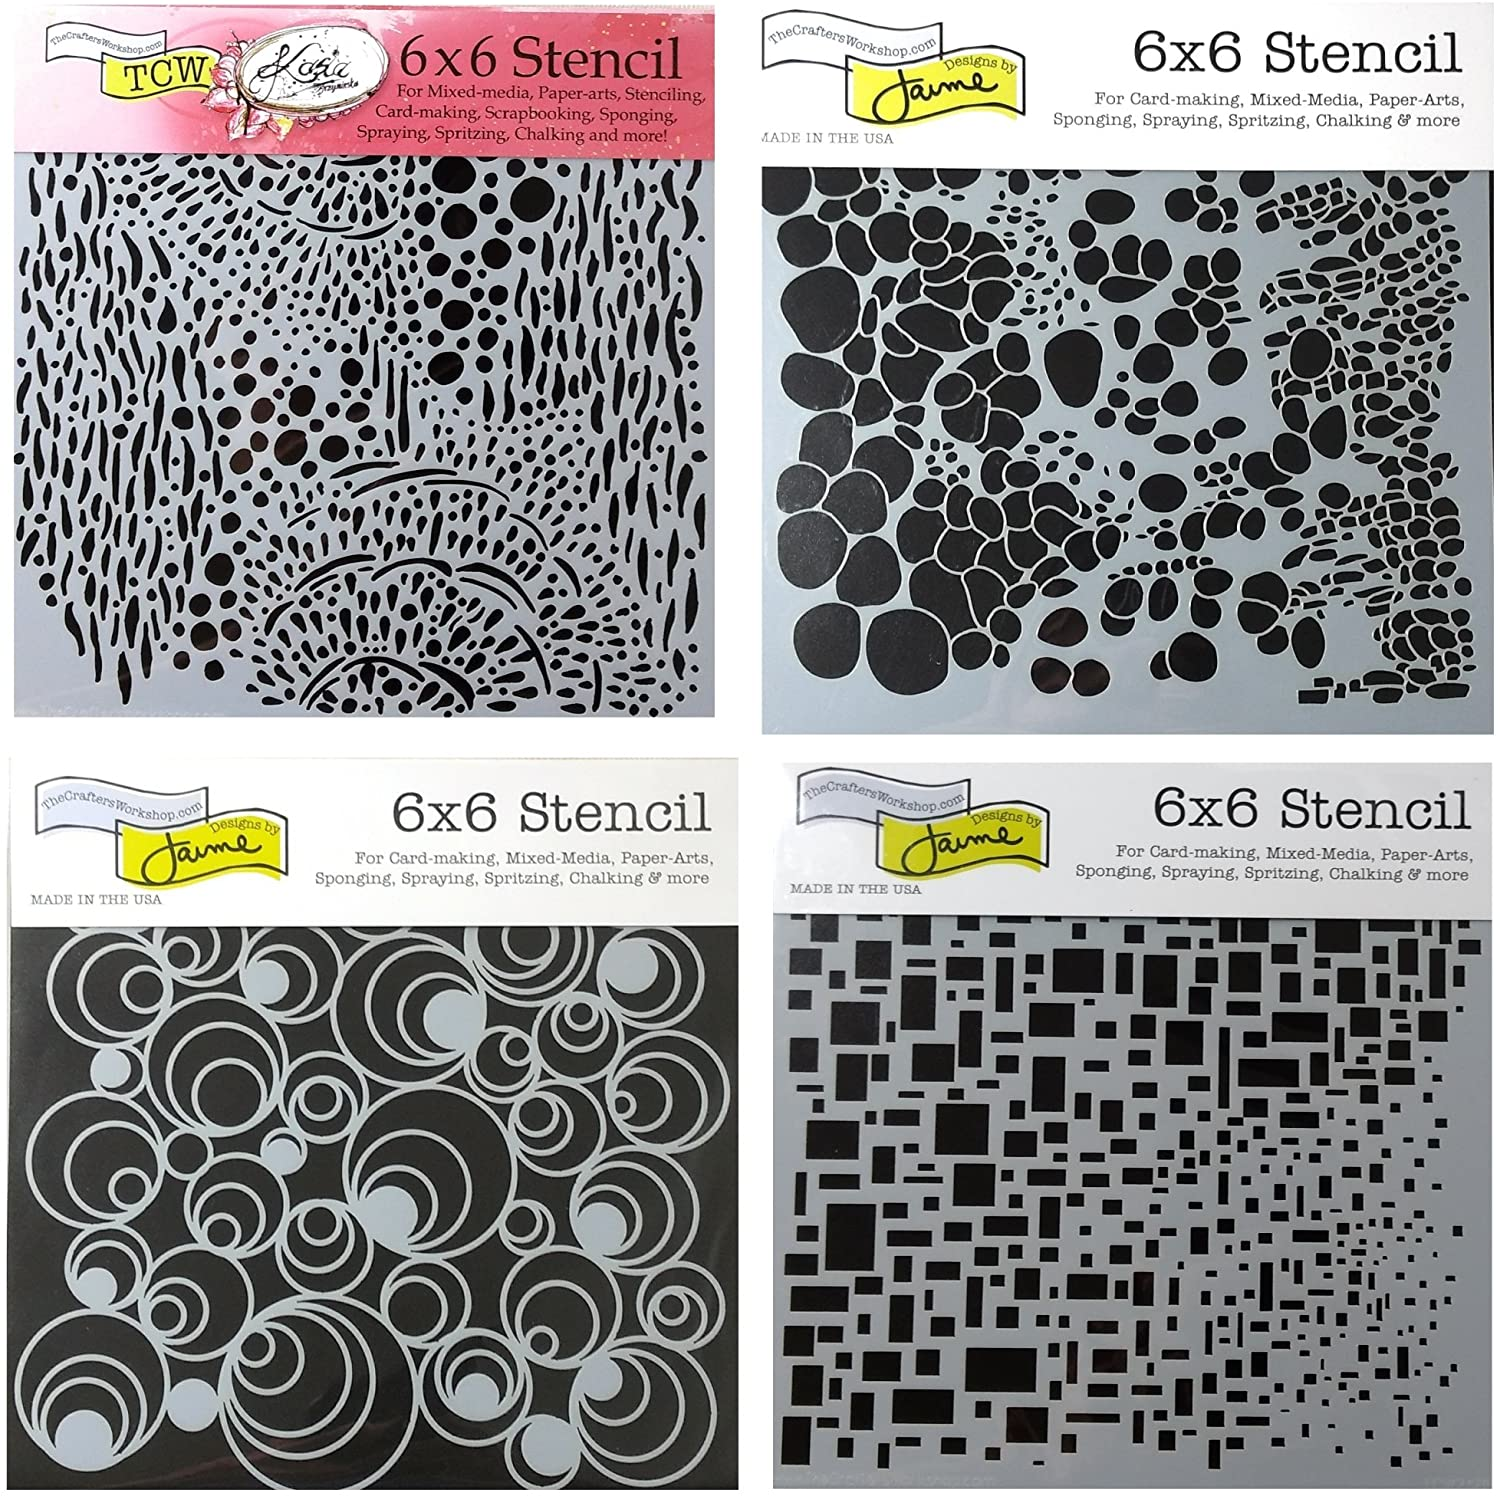 CRAFTERS WORKSHOP 4 Mixed Media Stencils Set | for Arts, Card Making, Journaling, Scrapbooking | 6 inch x 6 inch Templates | Cell Theory, Mod Spirals, Cubist, Sea Bubbles (Оne Расk)